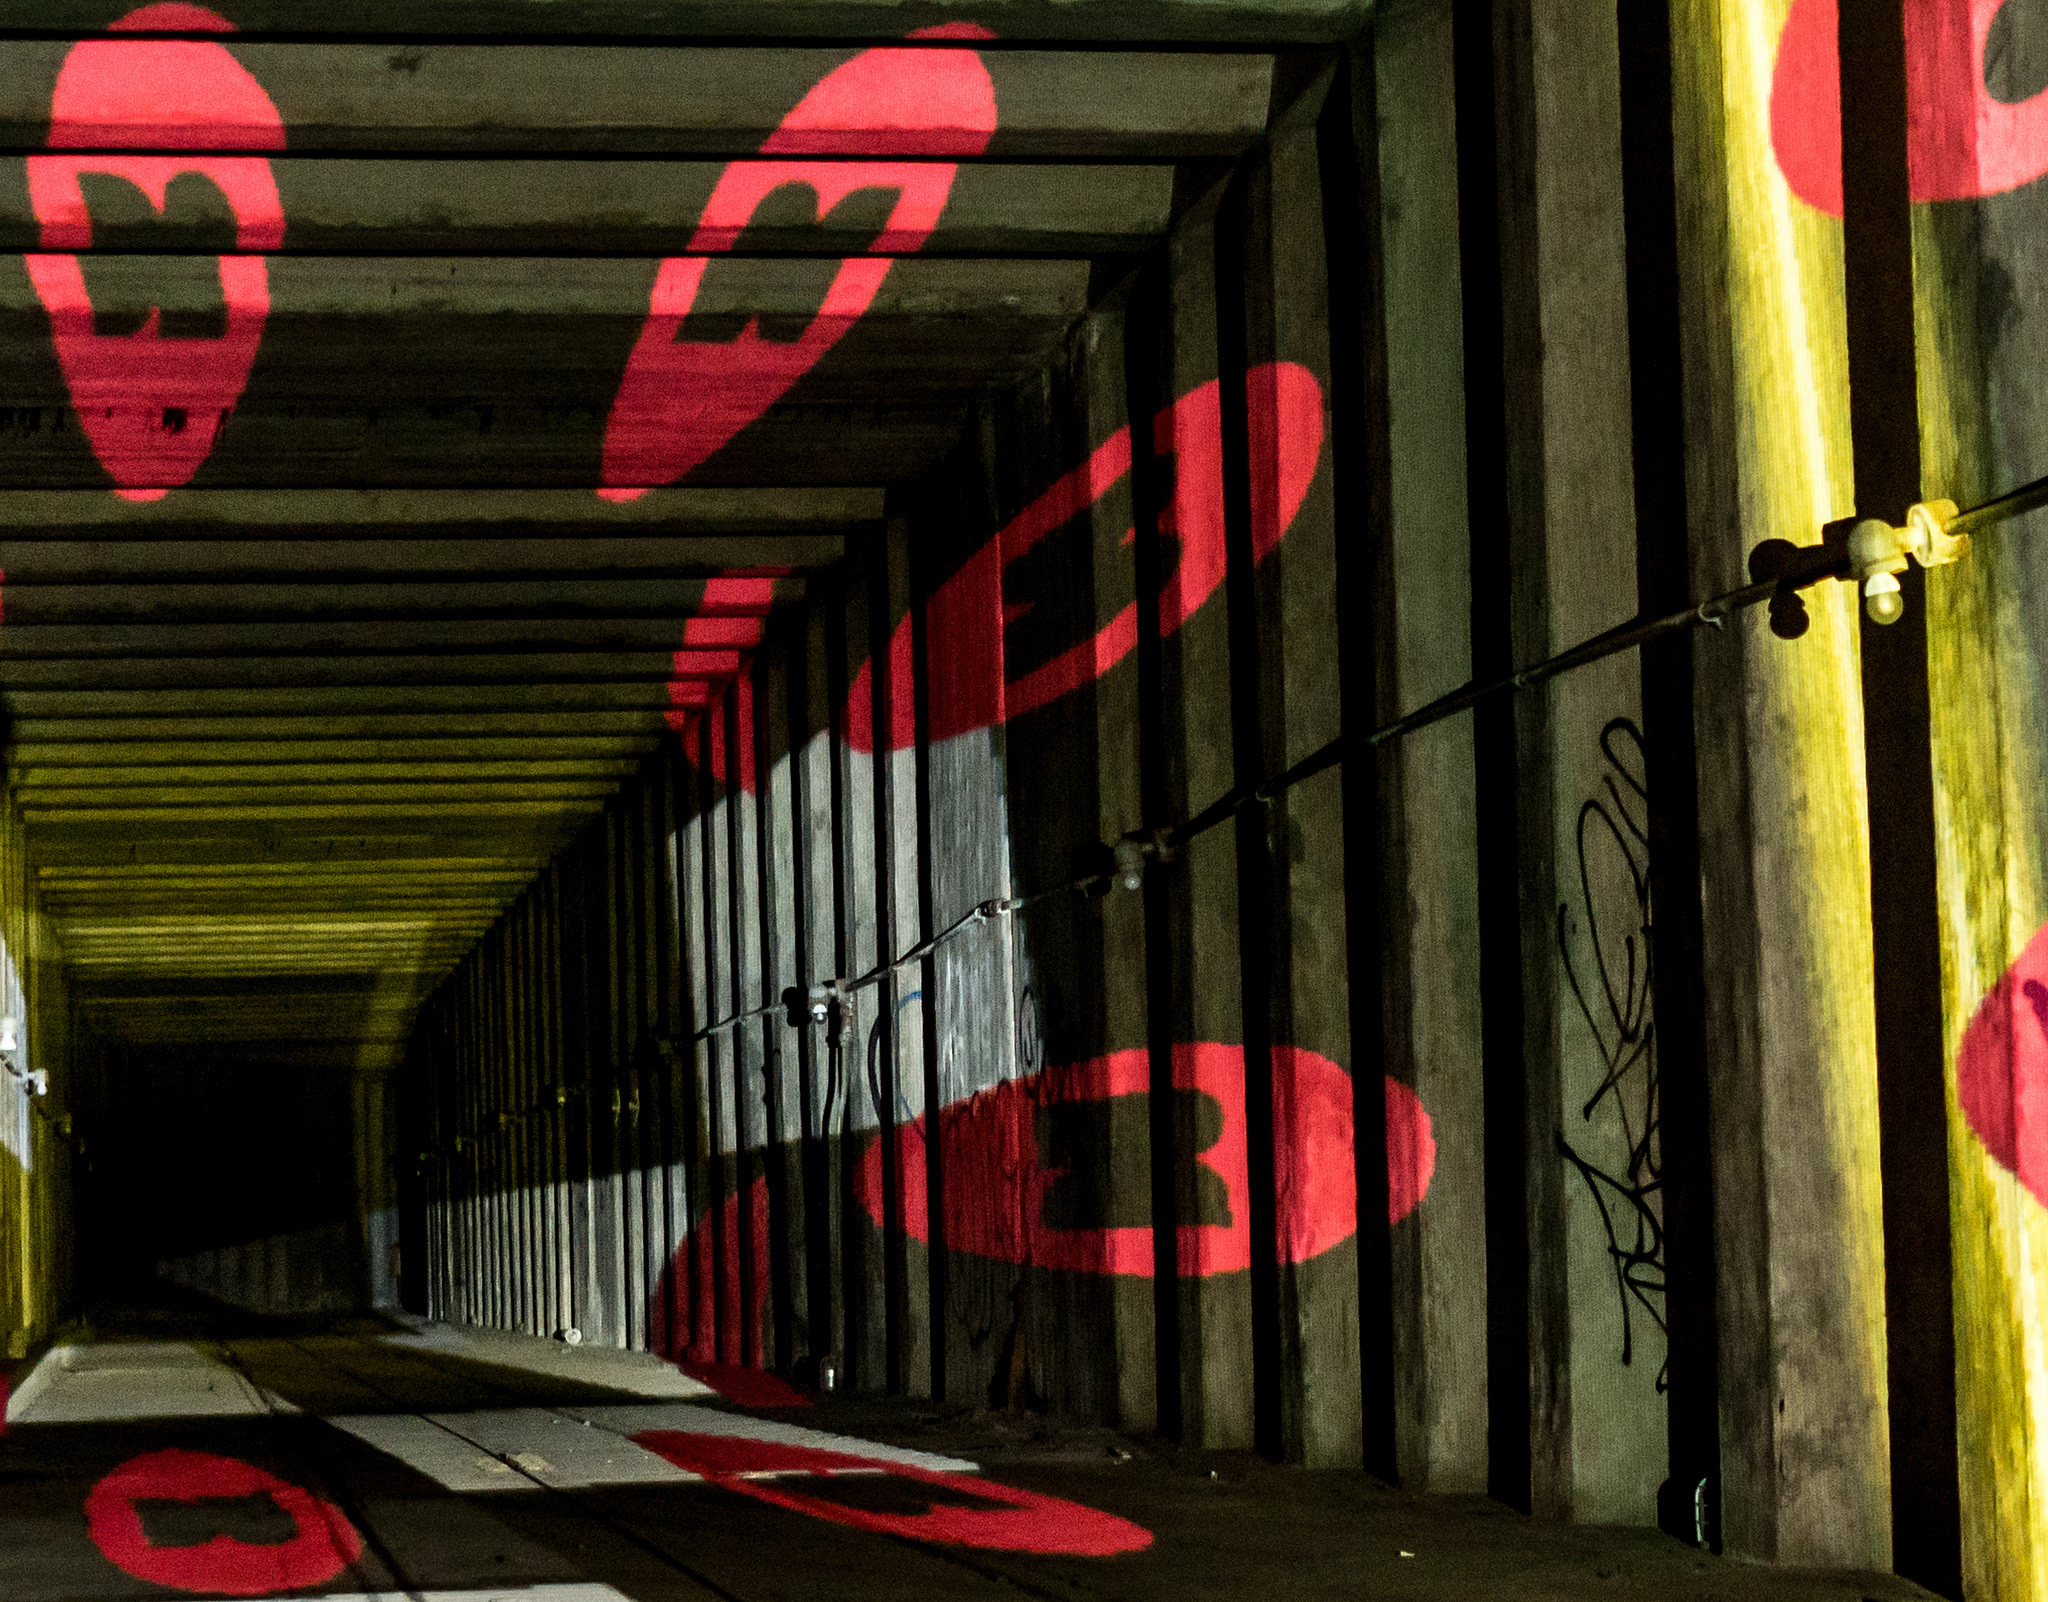 Dynamic video projections down the tunnel, featuring Dupont Underground logos. Photo:   Victoria Pickering  /CC BY-NC-ND 2.0